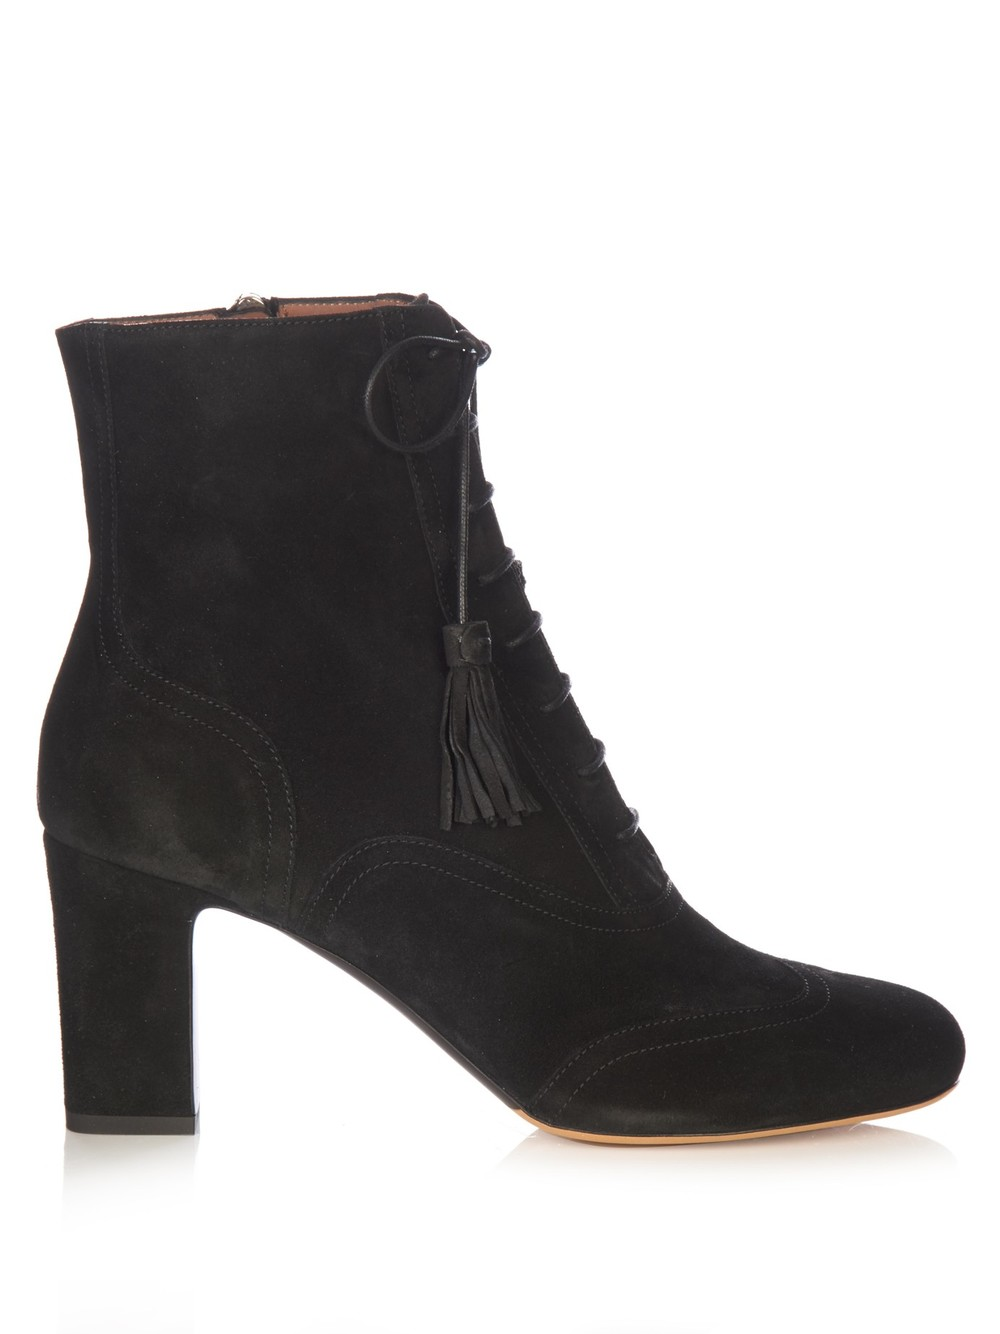 Tabitha Simmons 'Afton Lace-Up Suede Ankle Boots'